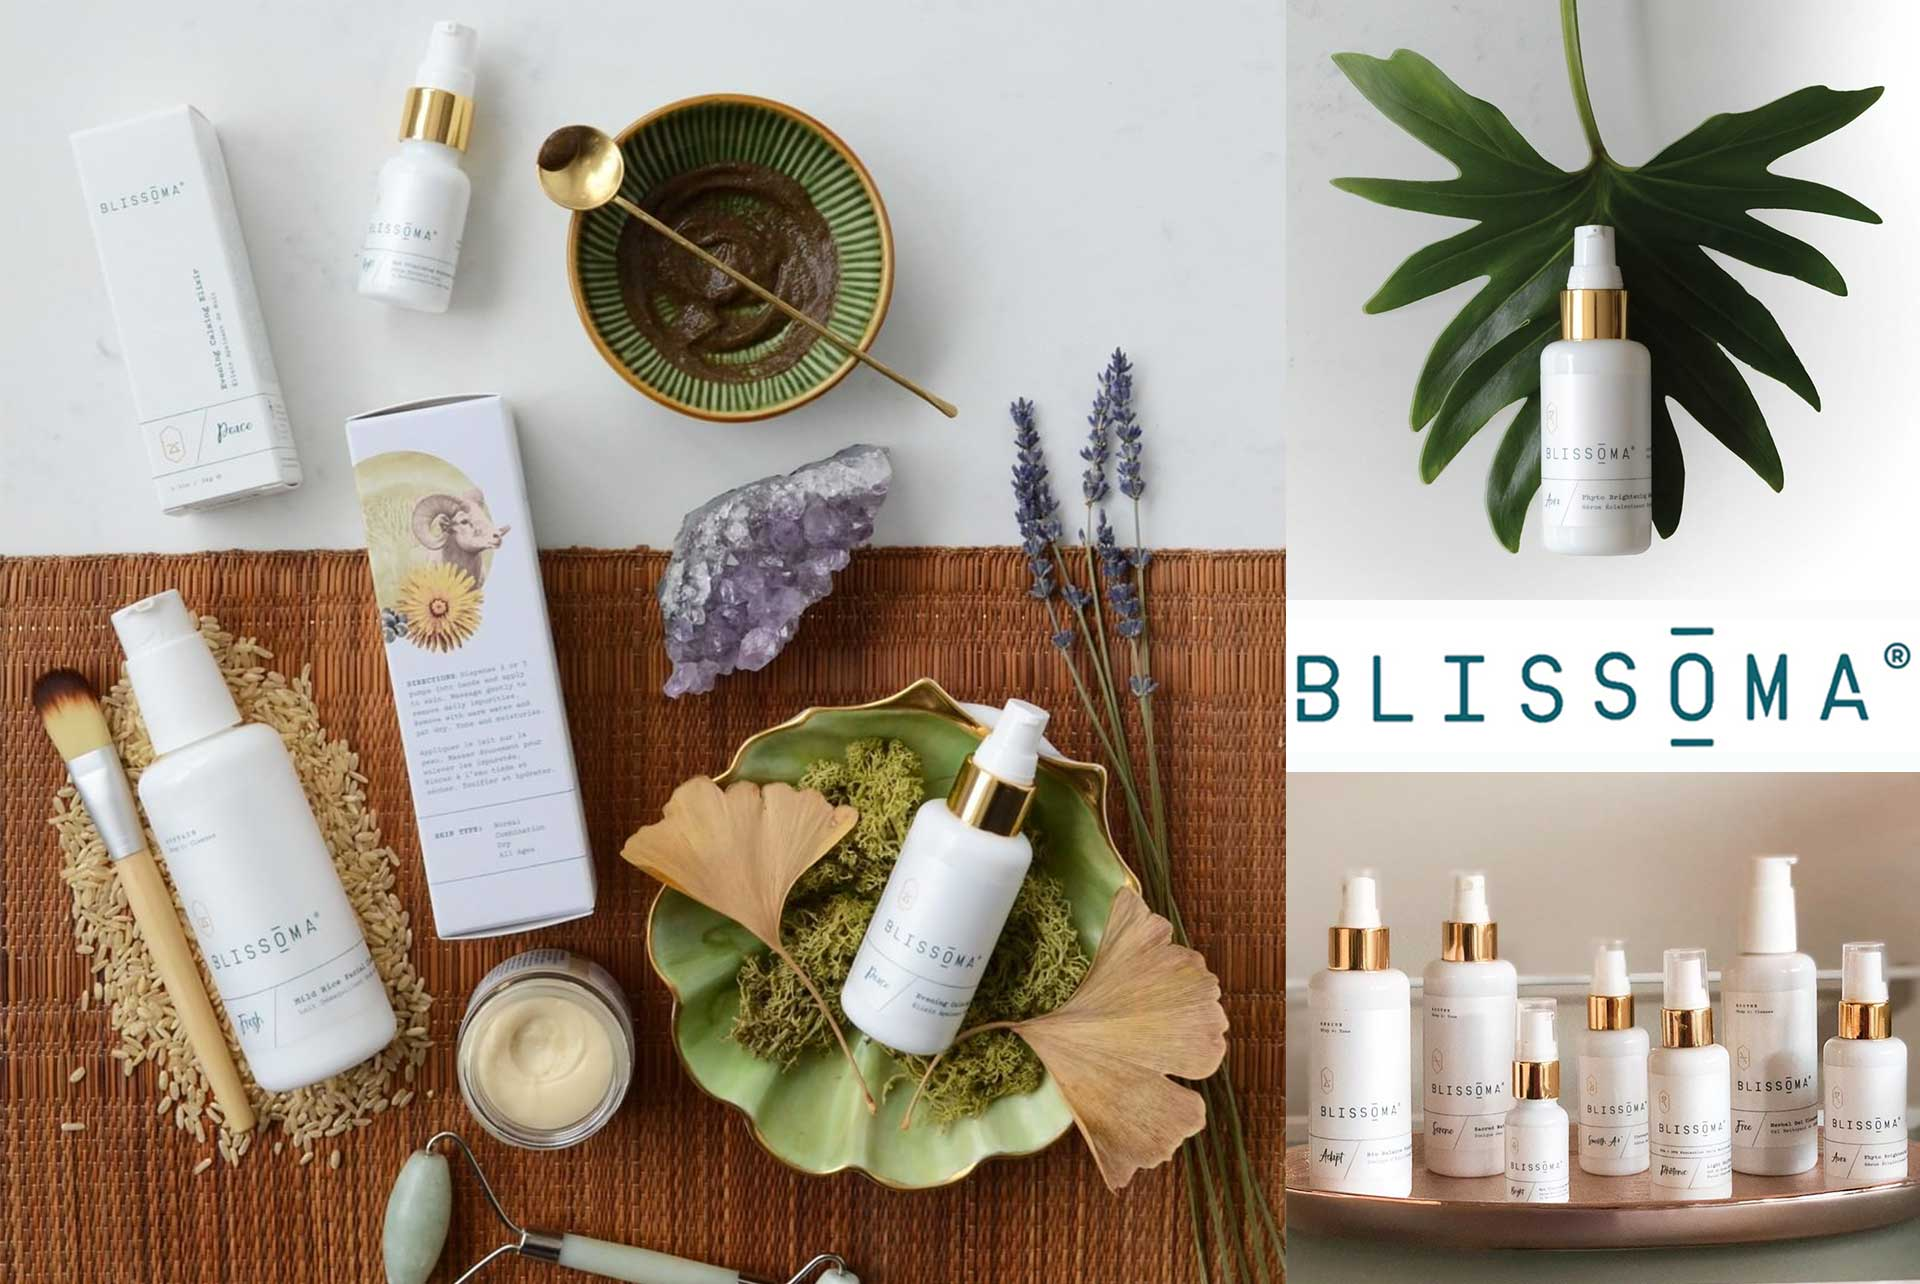 Is Blissoma Cruelty-Free & Vegan?